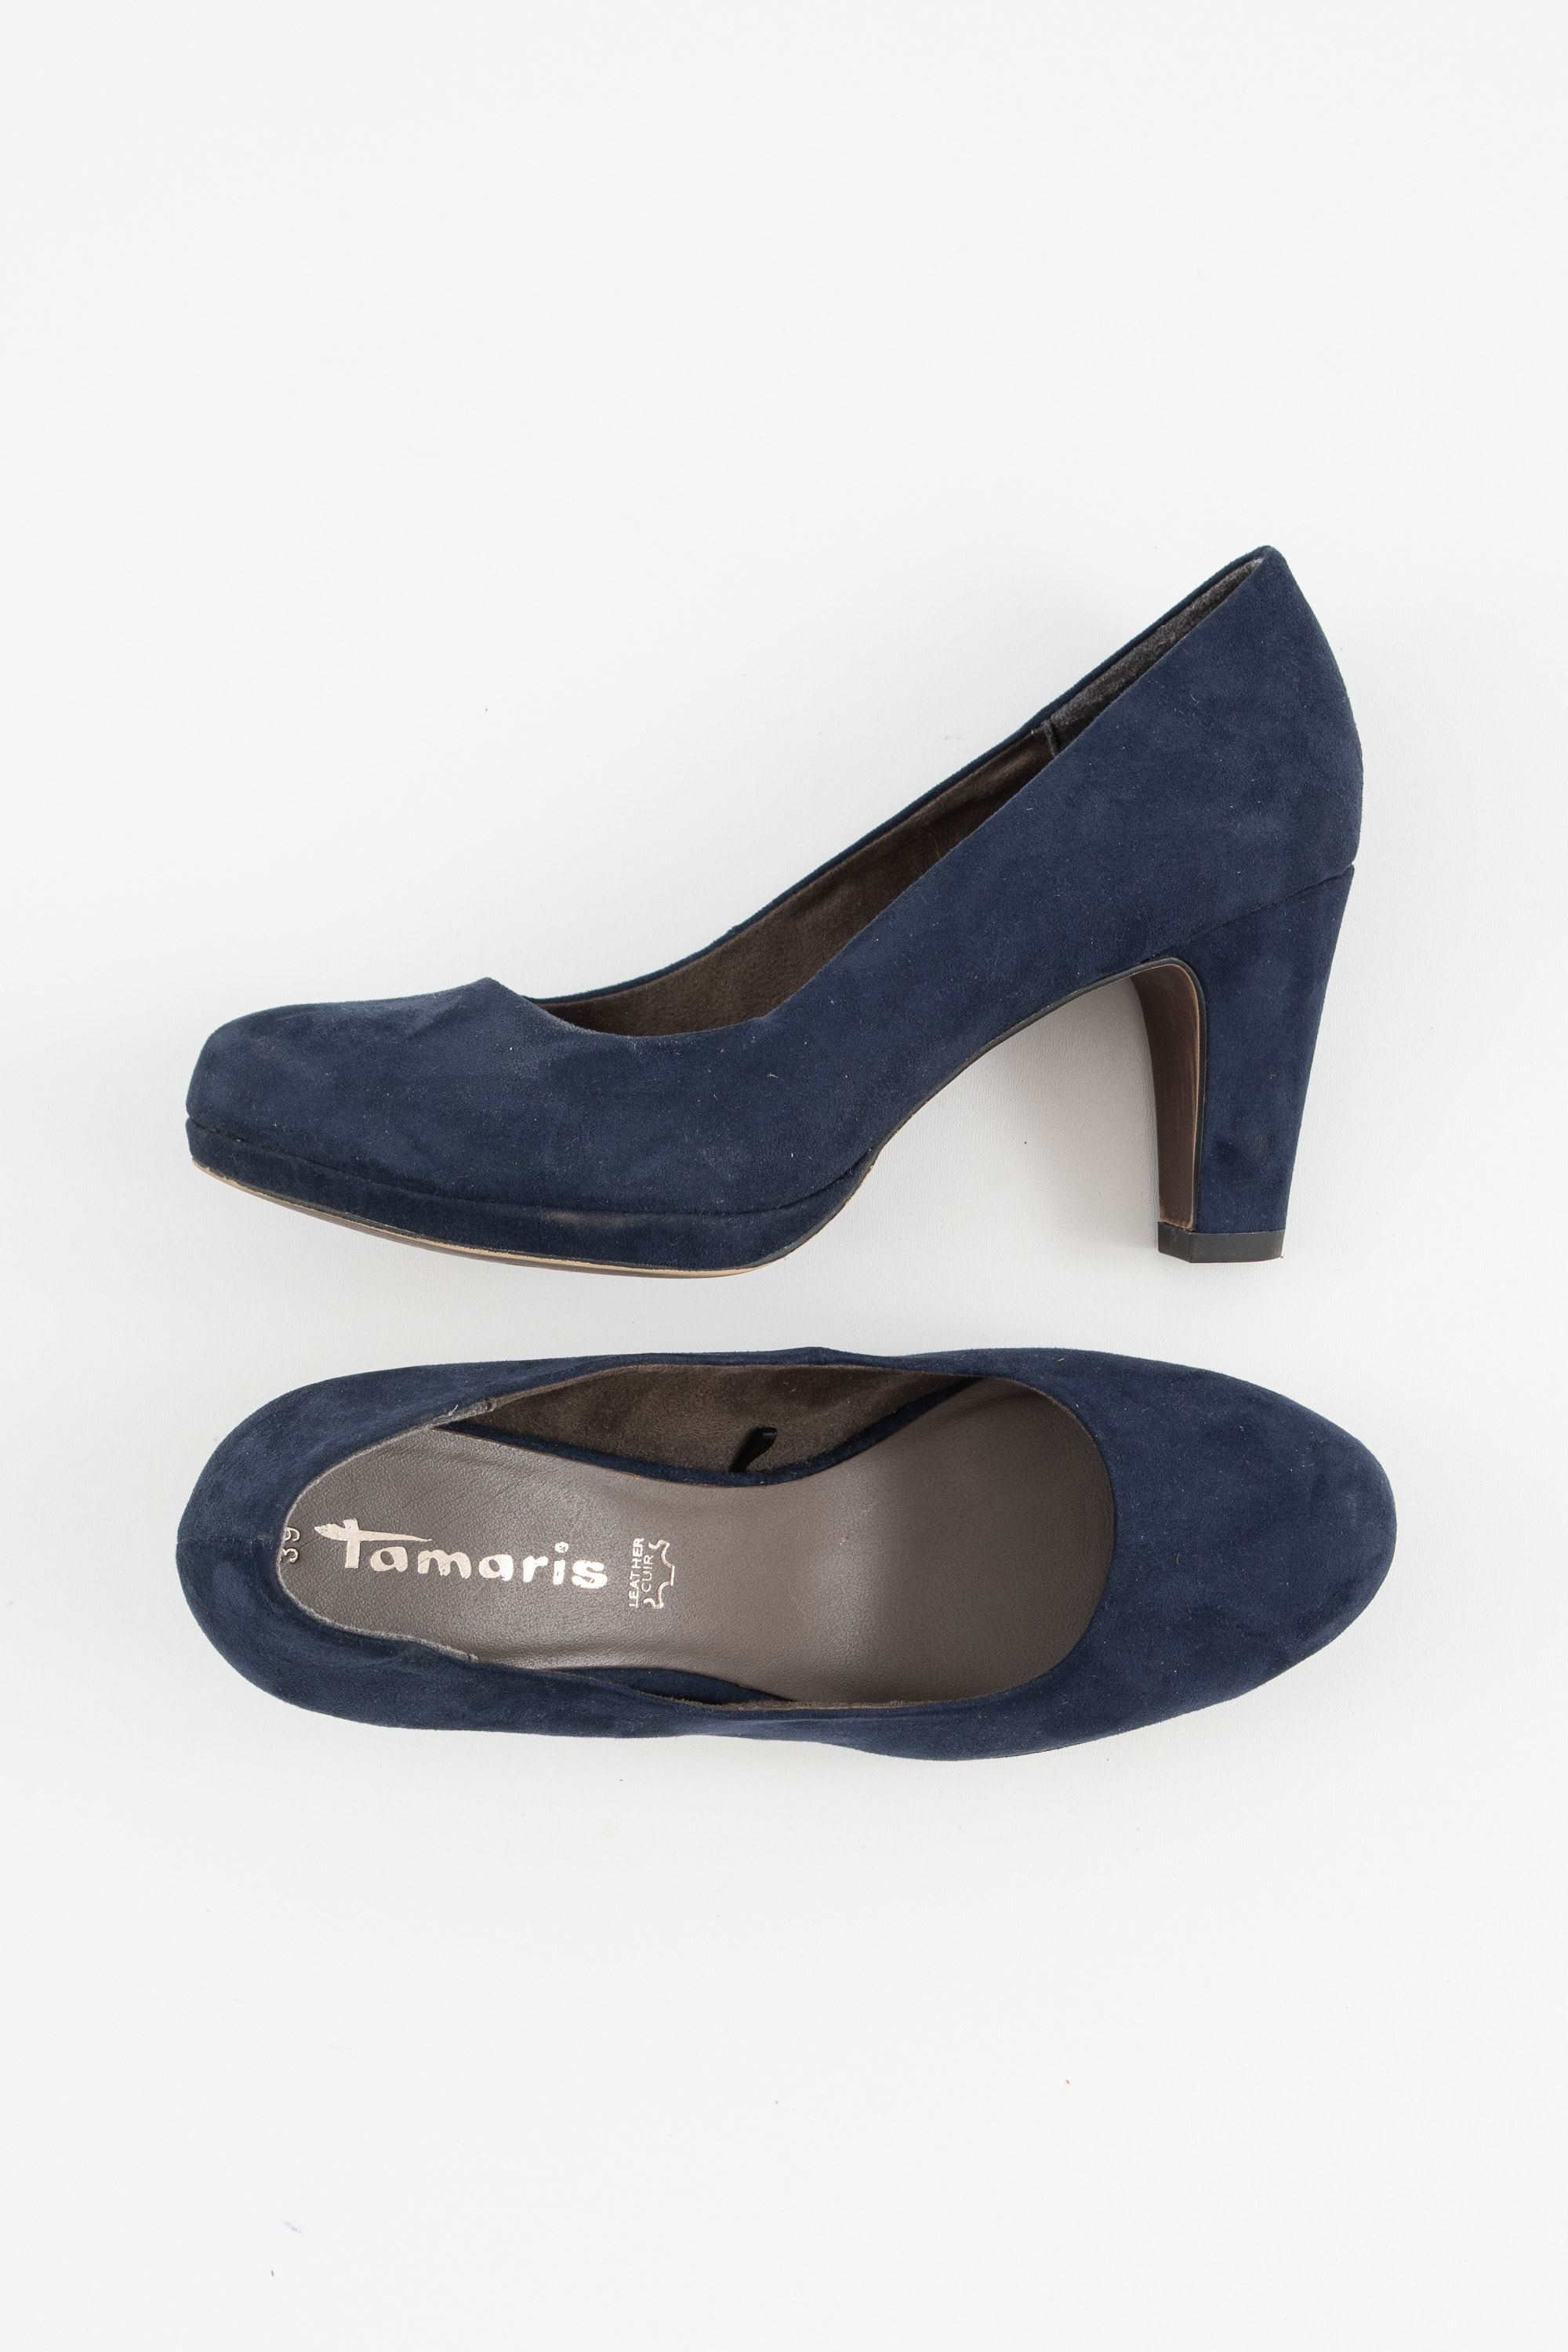 Tamaris Pumps Blau Gr.39